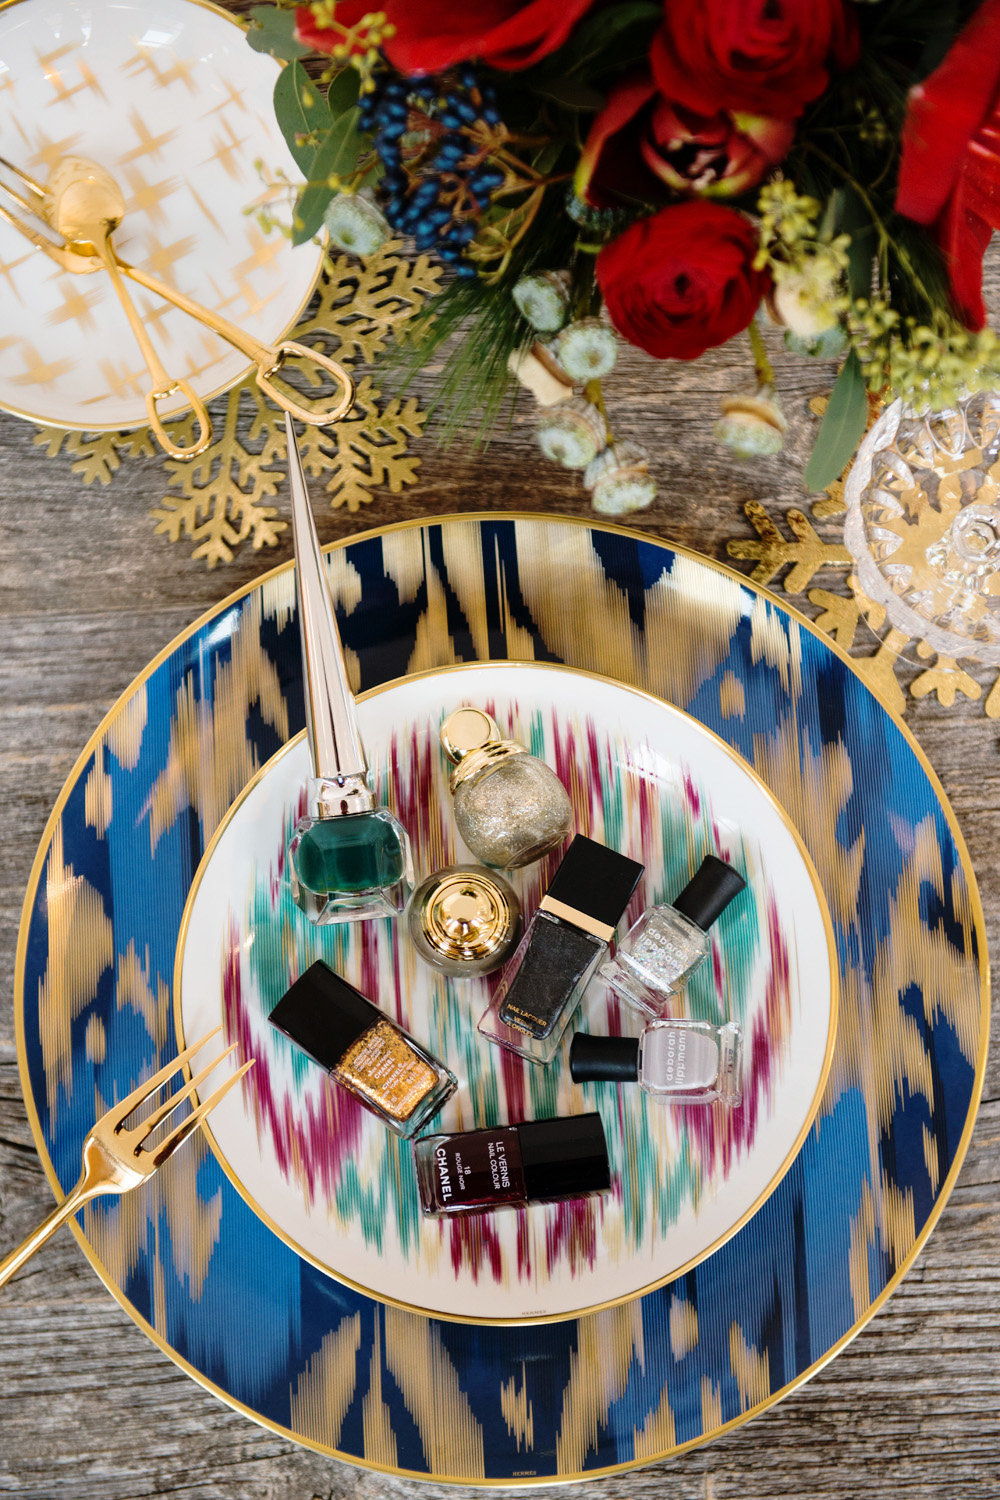 versace hermes plates knives bowls cutlery dinnerware table setting ideas for wedding bridal showers gifts how & 10 Gorgeous Table Setting Ideas + How To Set Your Table - shoproomideas